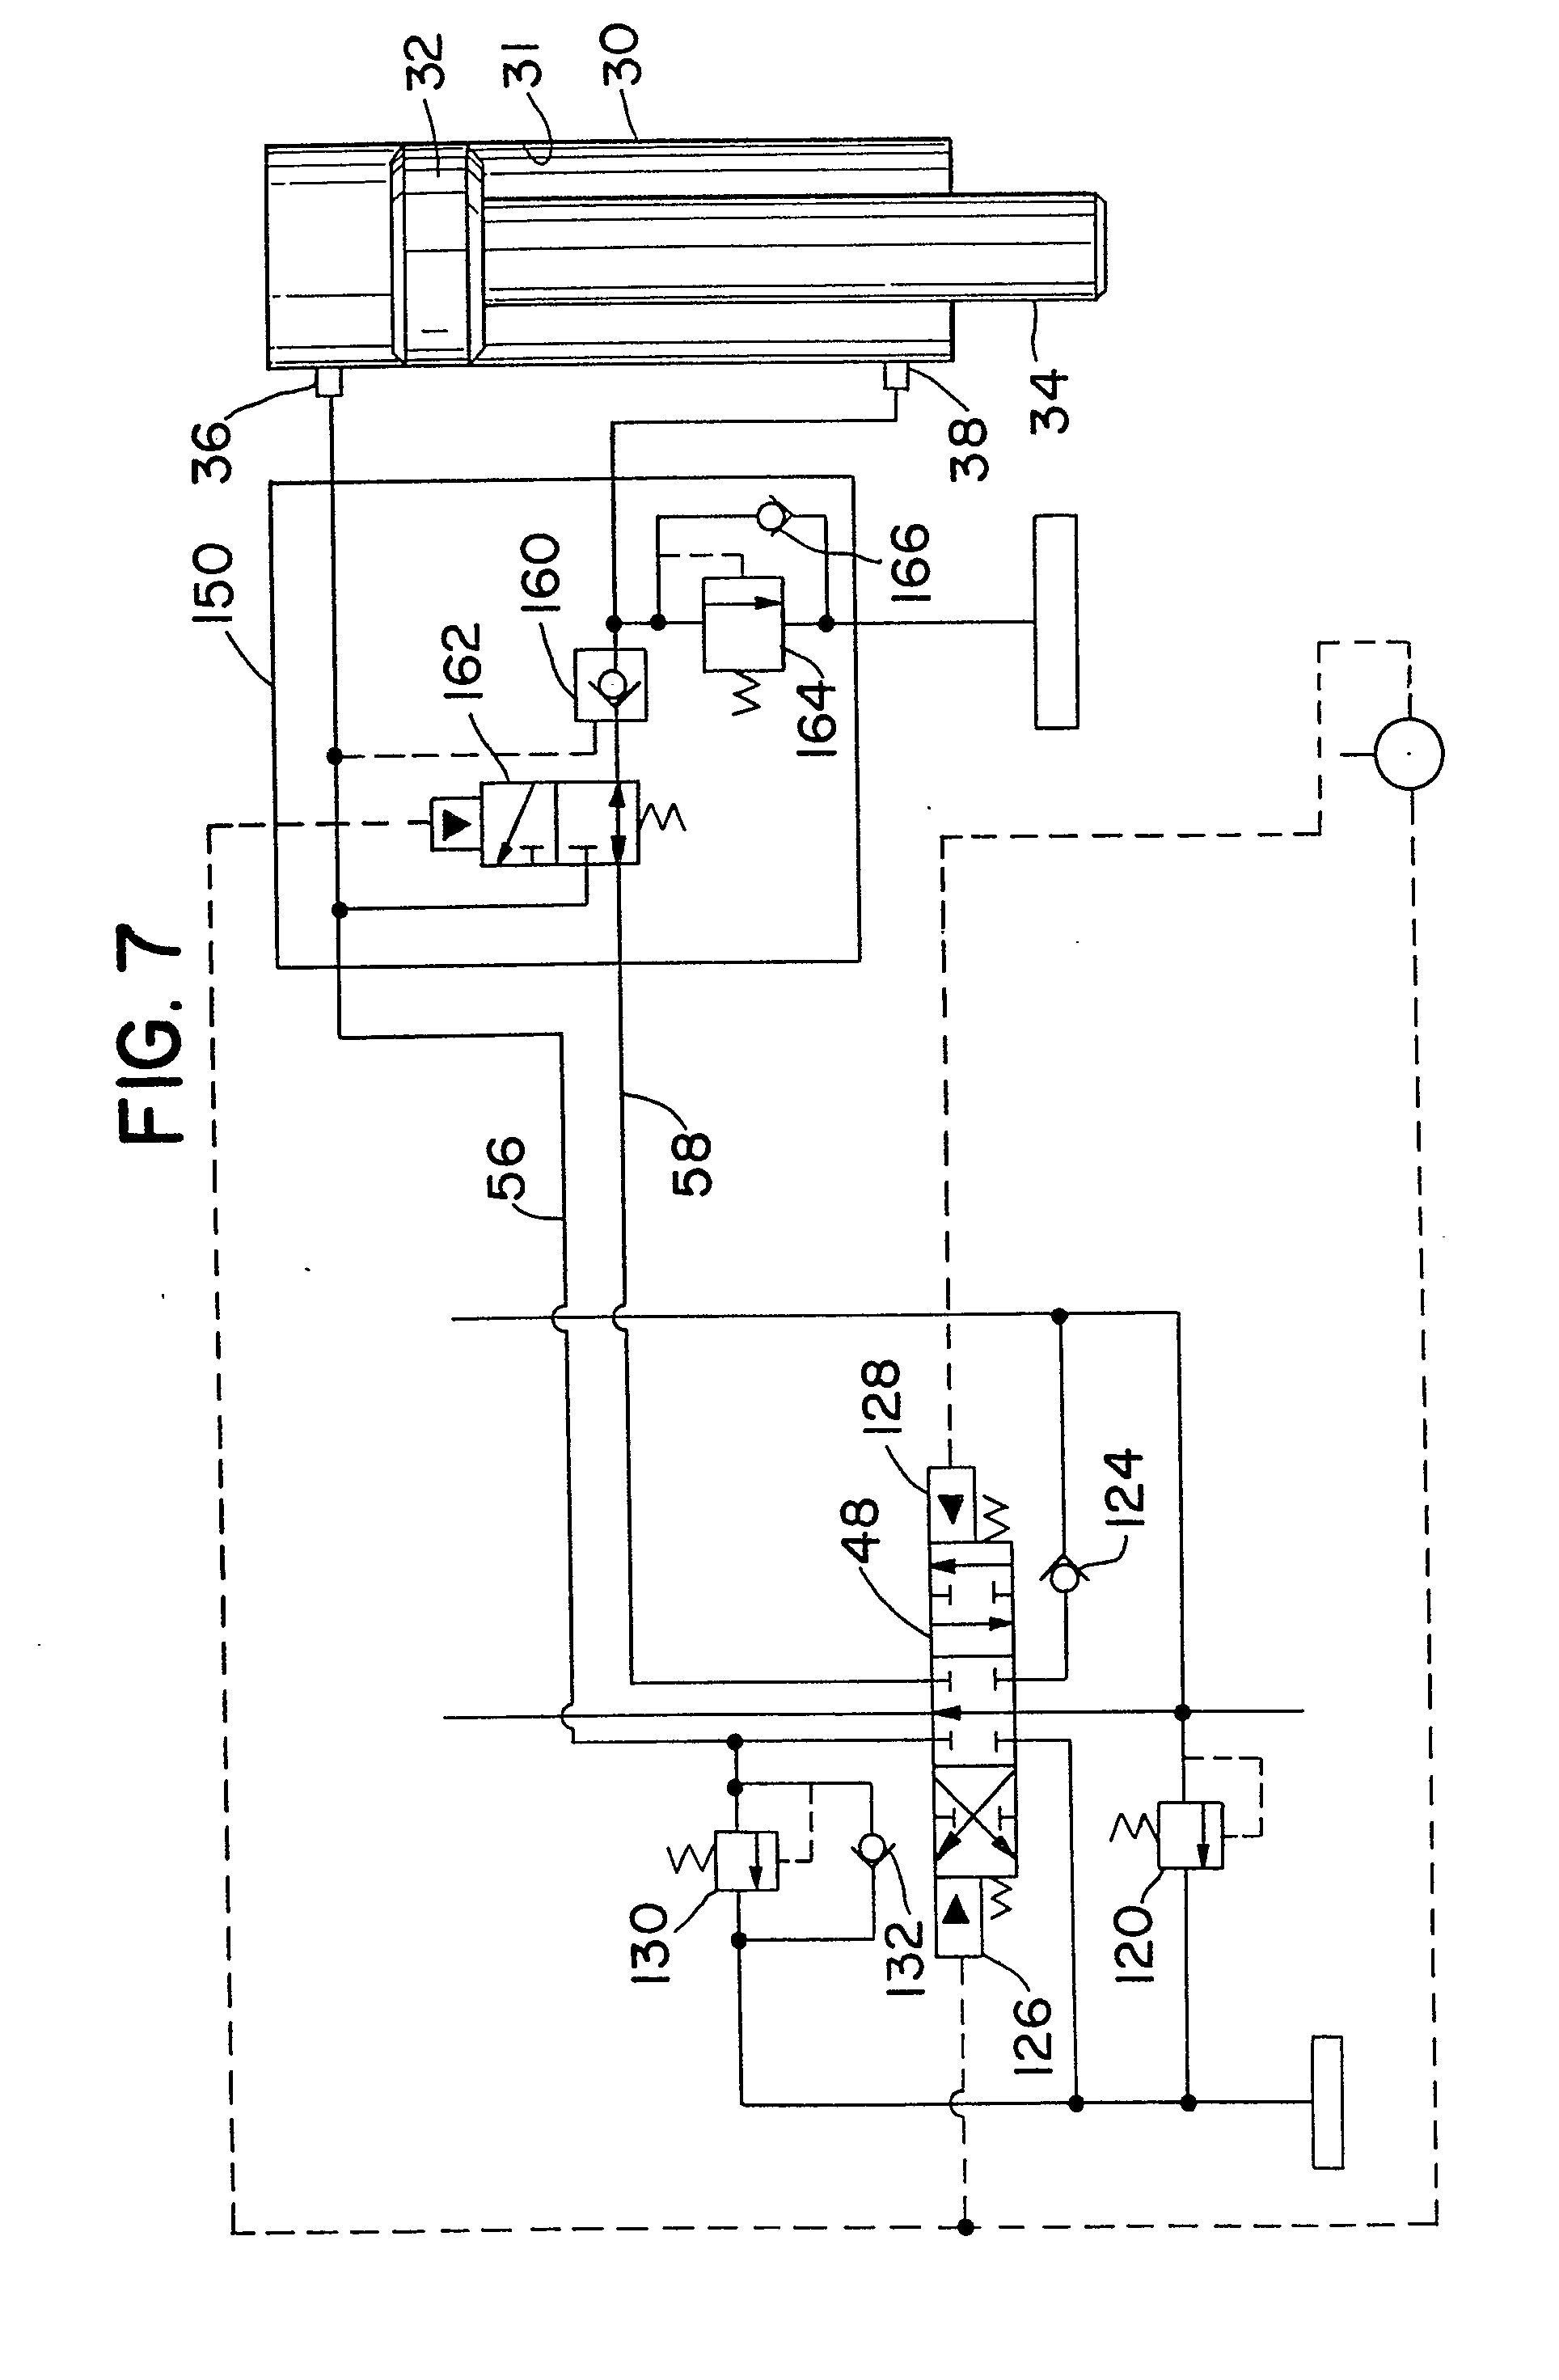 Definition And Drawing Of Pneumatic Circuits In A Quick And Easy Way